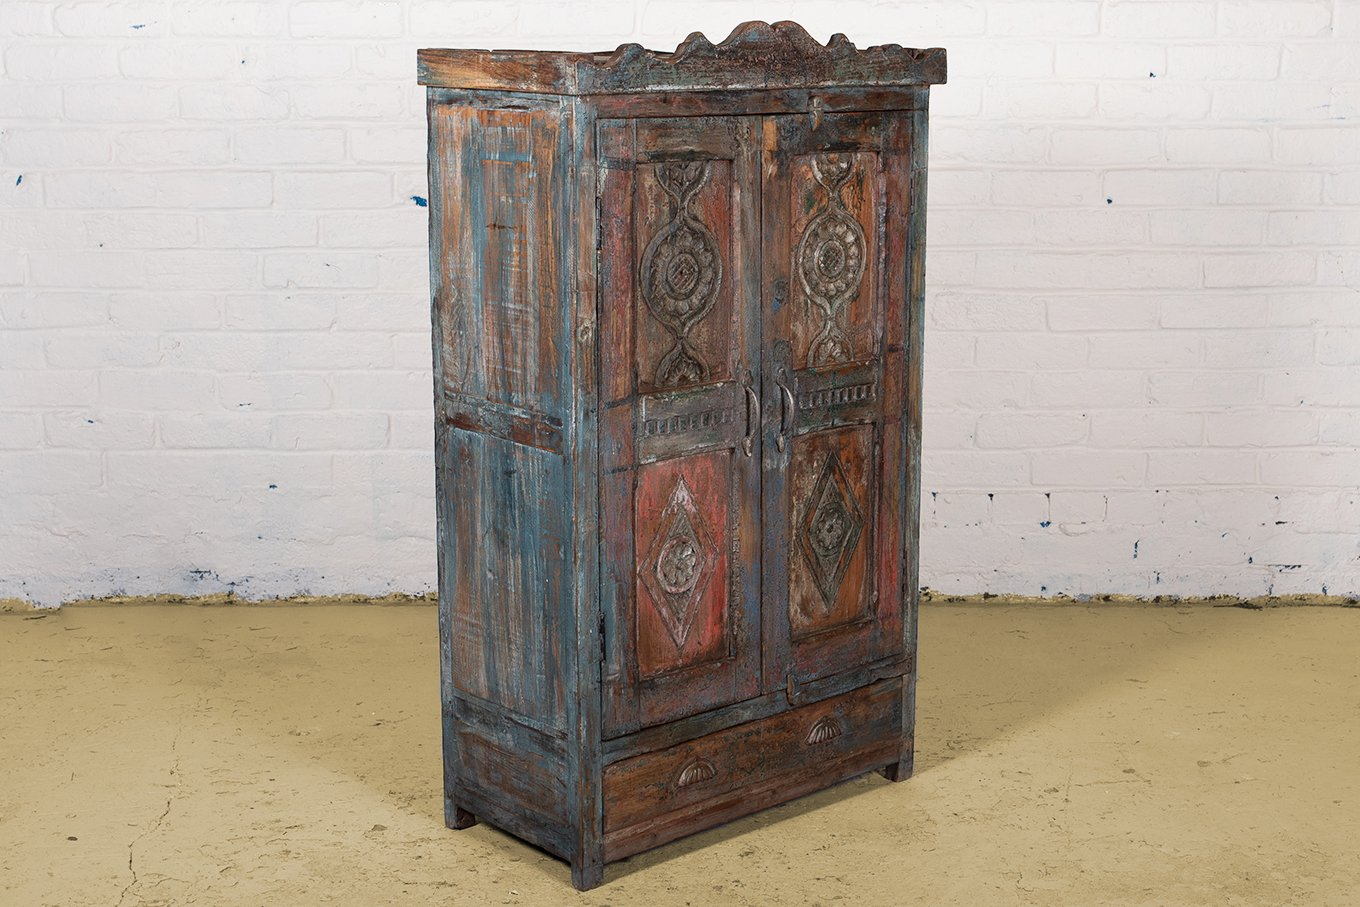 Old wooden cupboard with aged blue and red paint